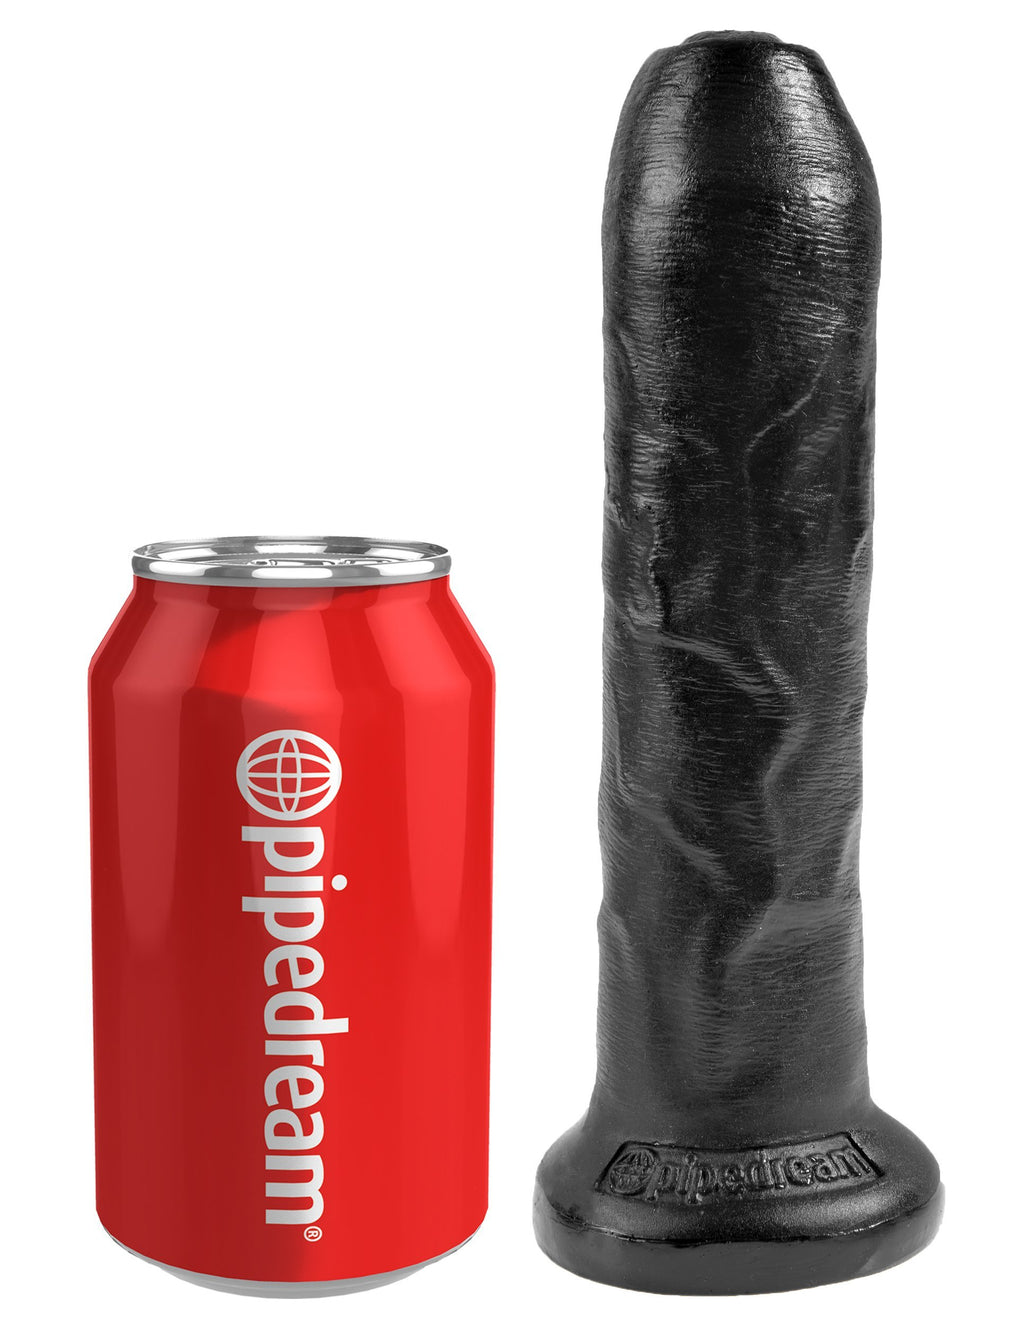 King Cock 7inch Uncut Cock Black | Dildos, Vibrator, Realistic Dildos, Sex Toys For Women, Sex Toys, Adult Toys | My Sex Shop